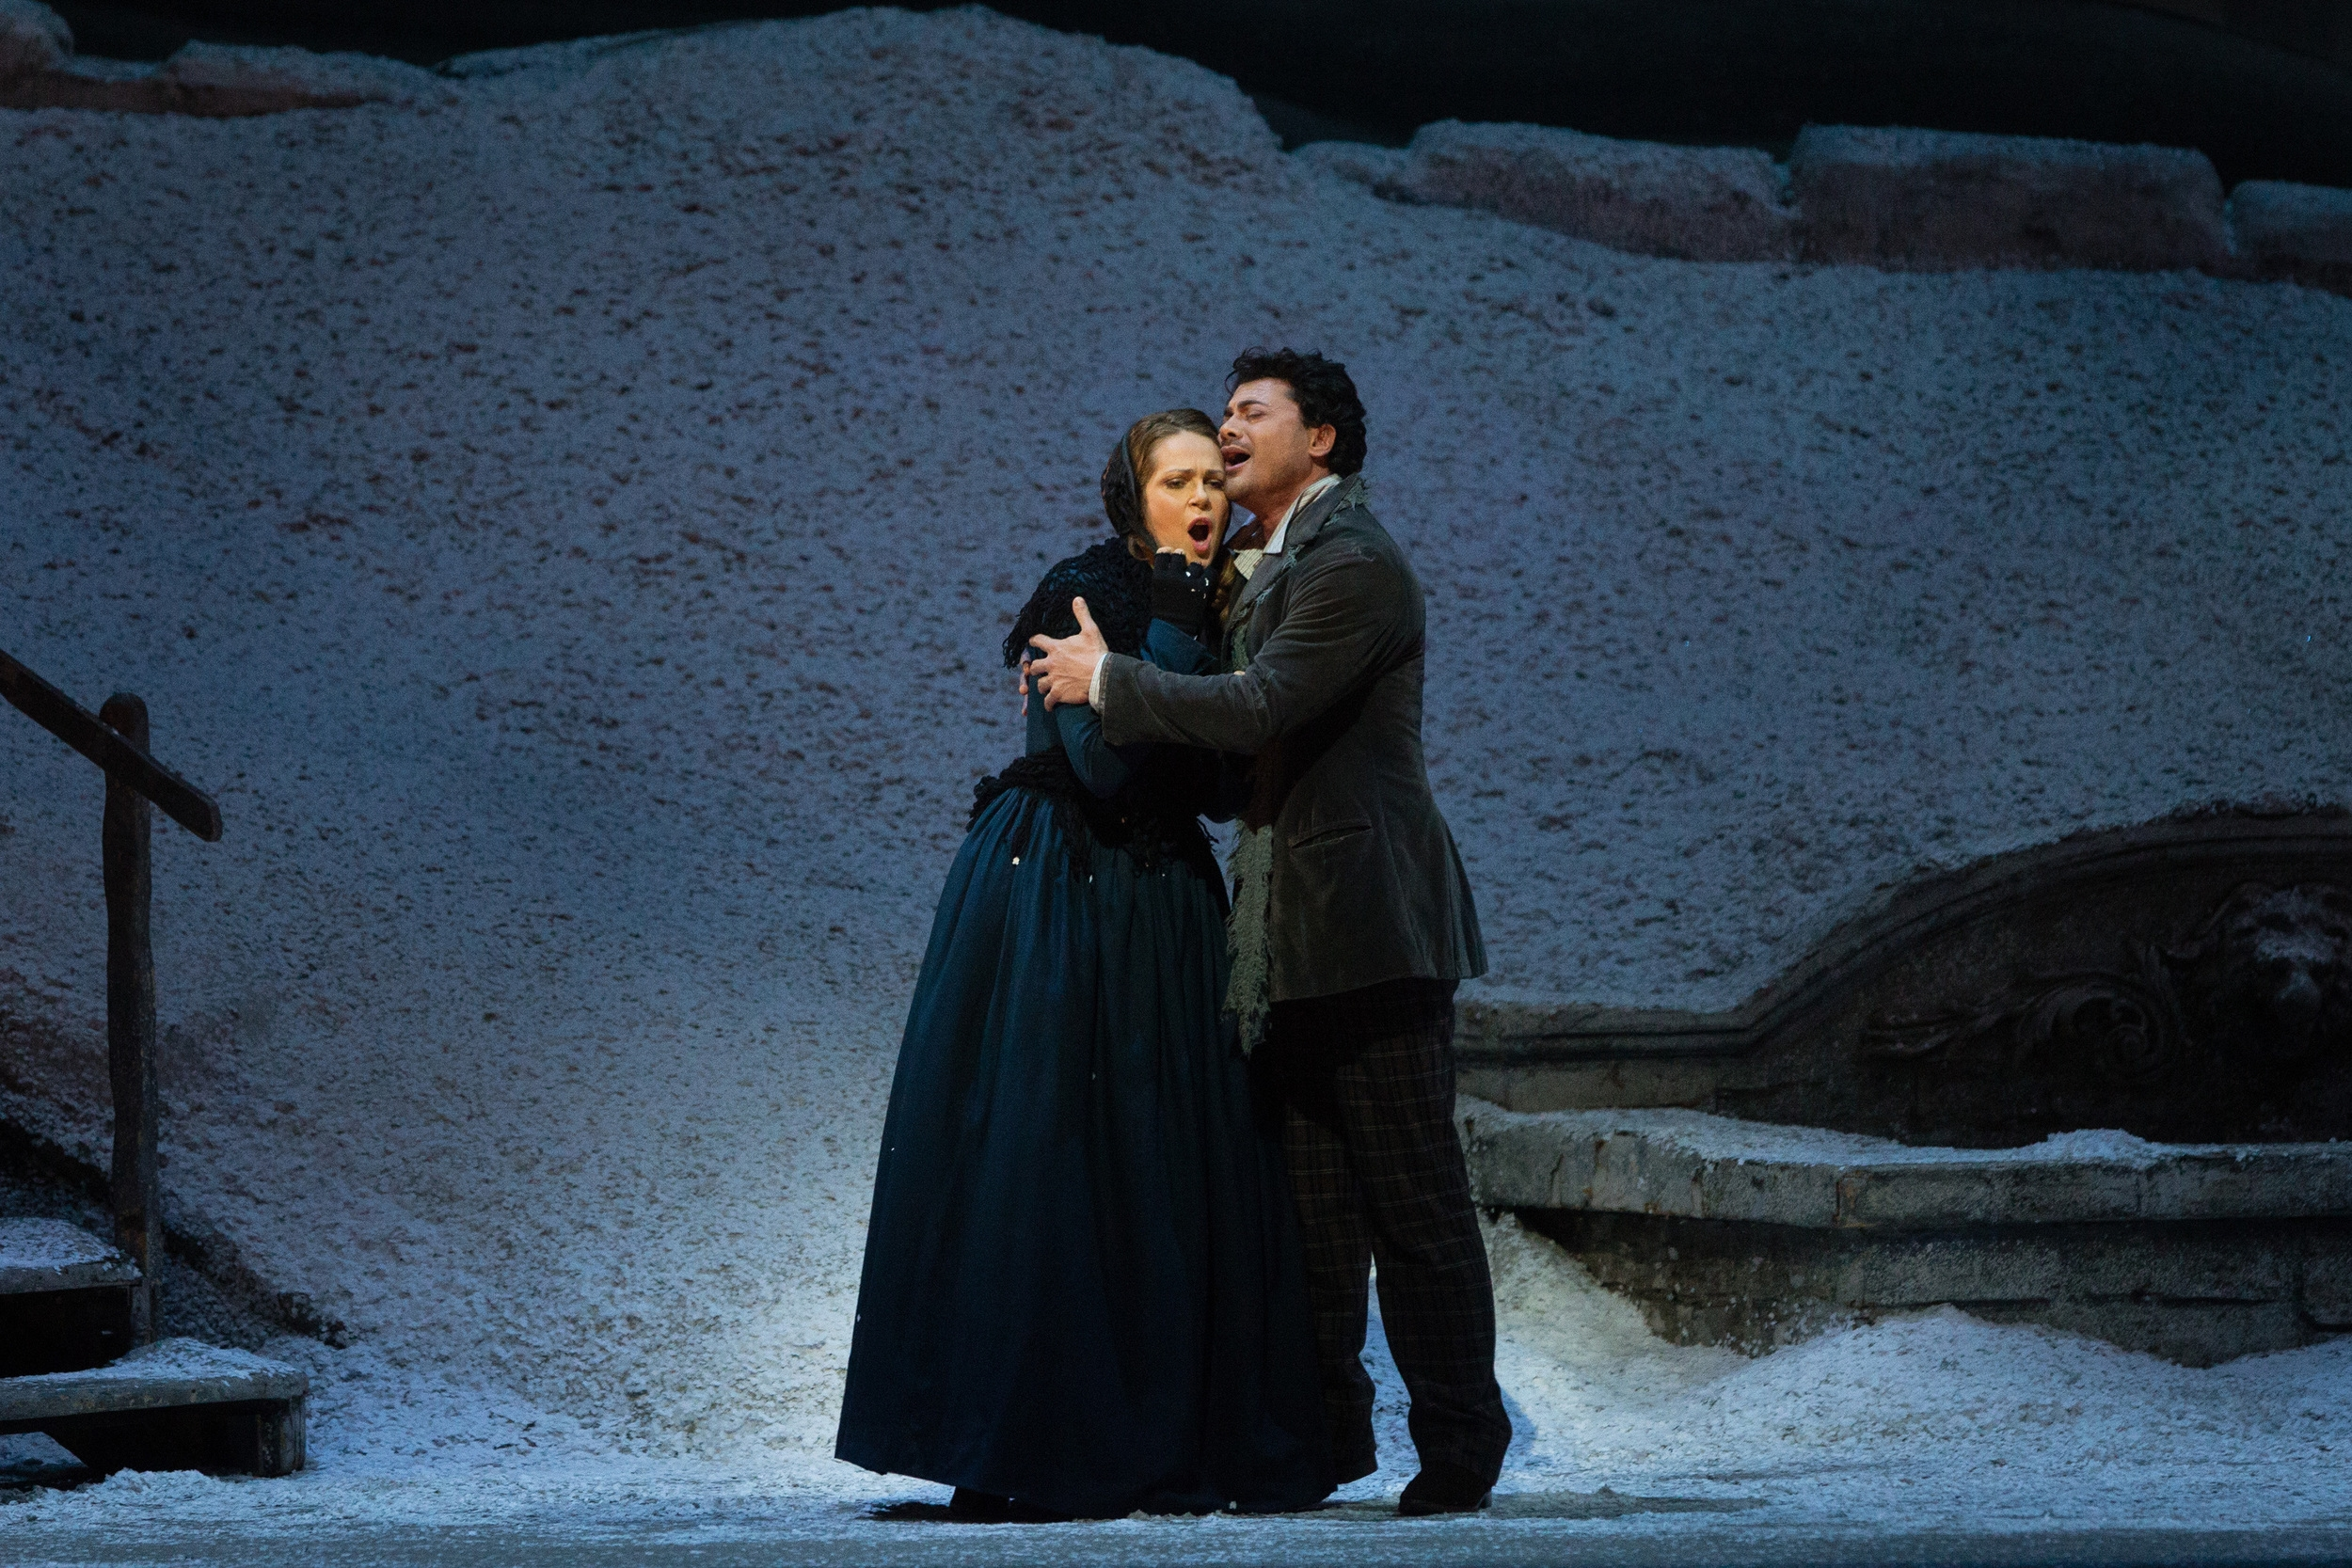 Kristine Opolais as Mimi and Vittorio Grigolo as Rodolfo in La Boheme.  Photo by Marty Sohl; courtesy of Metropolitan Opera.